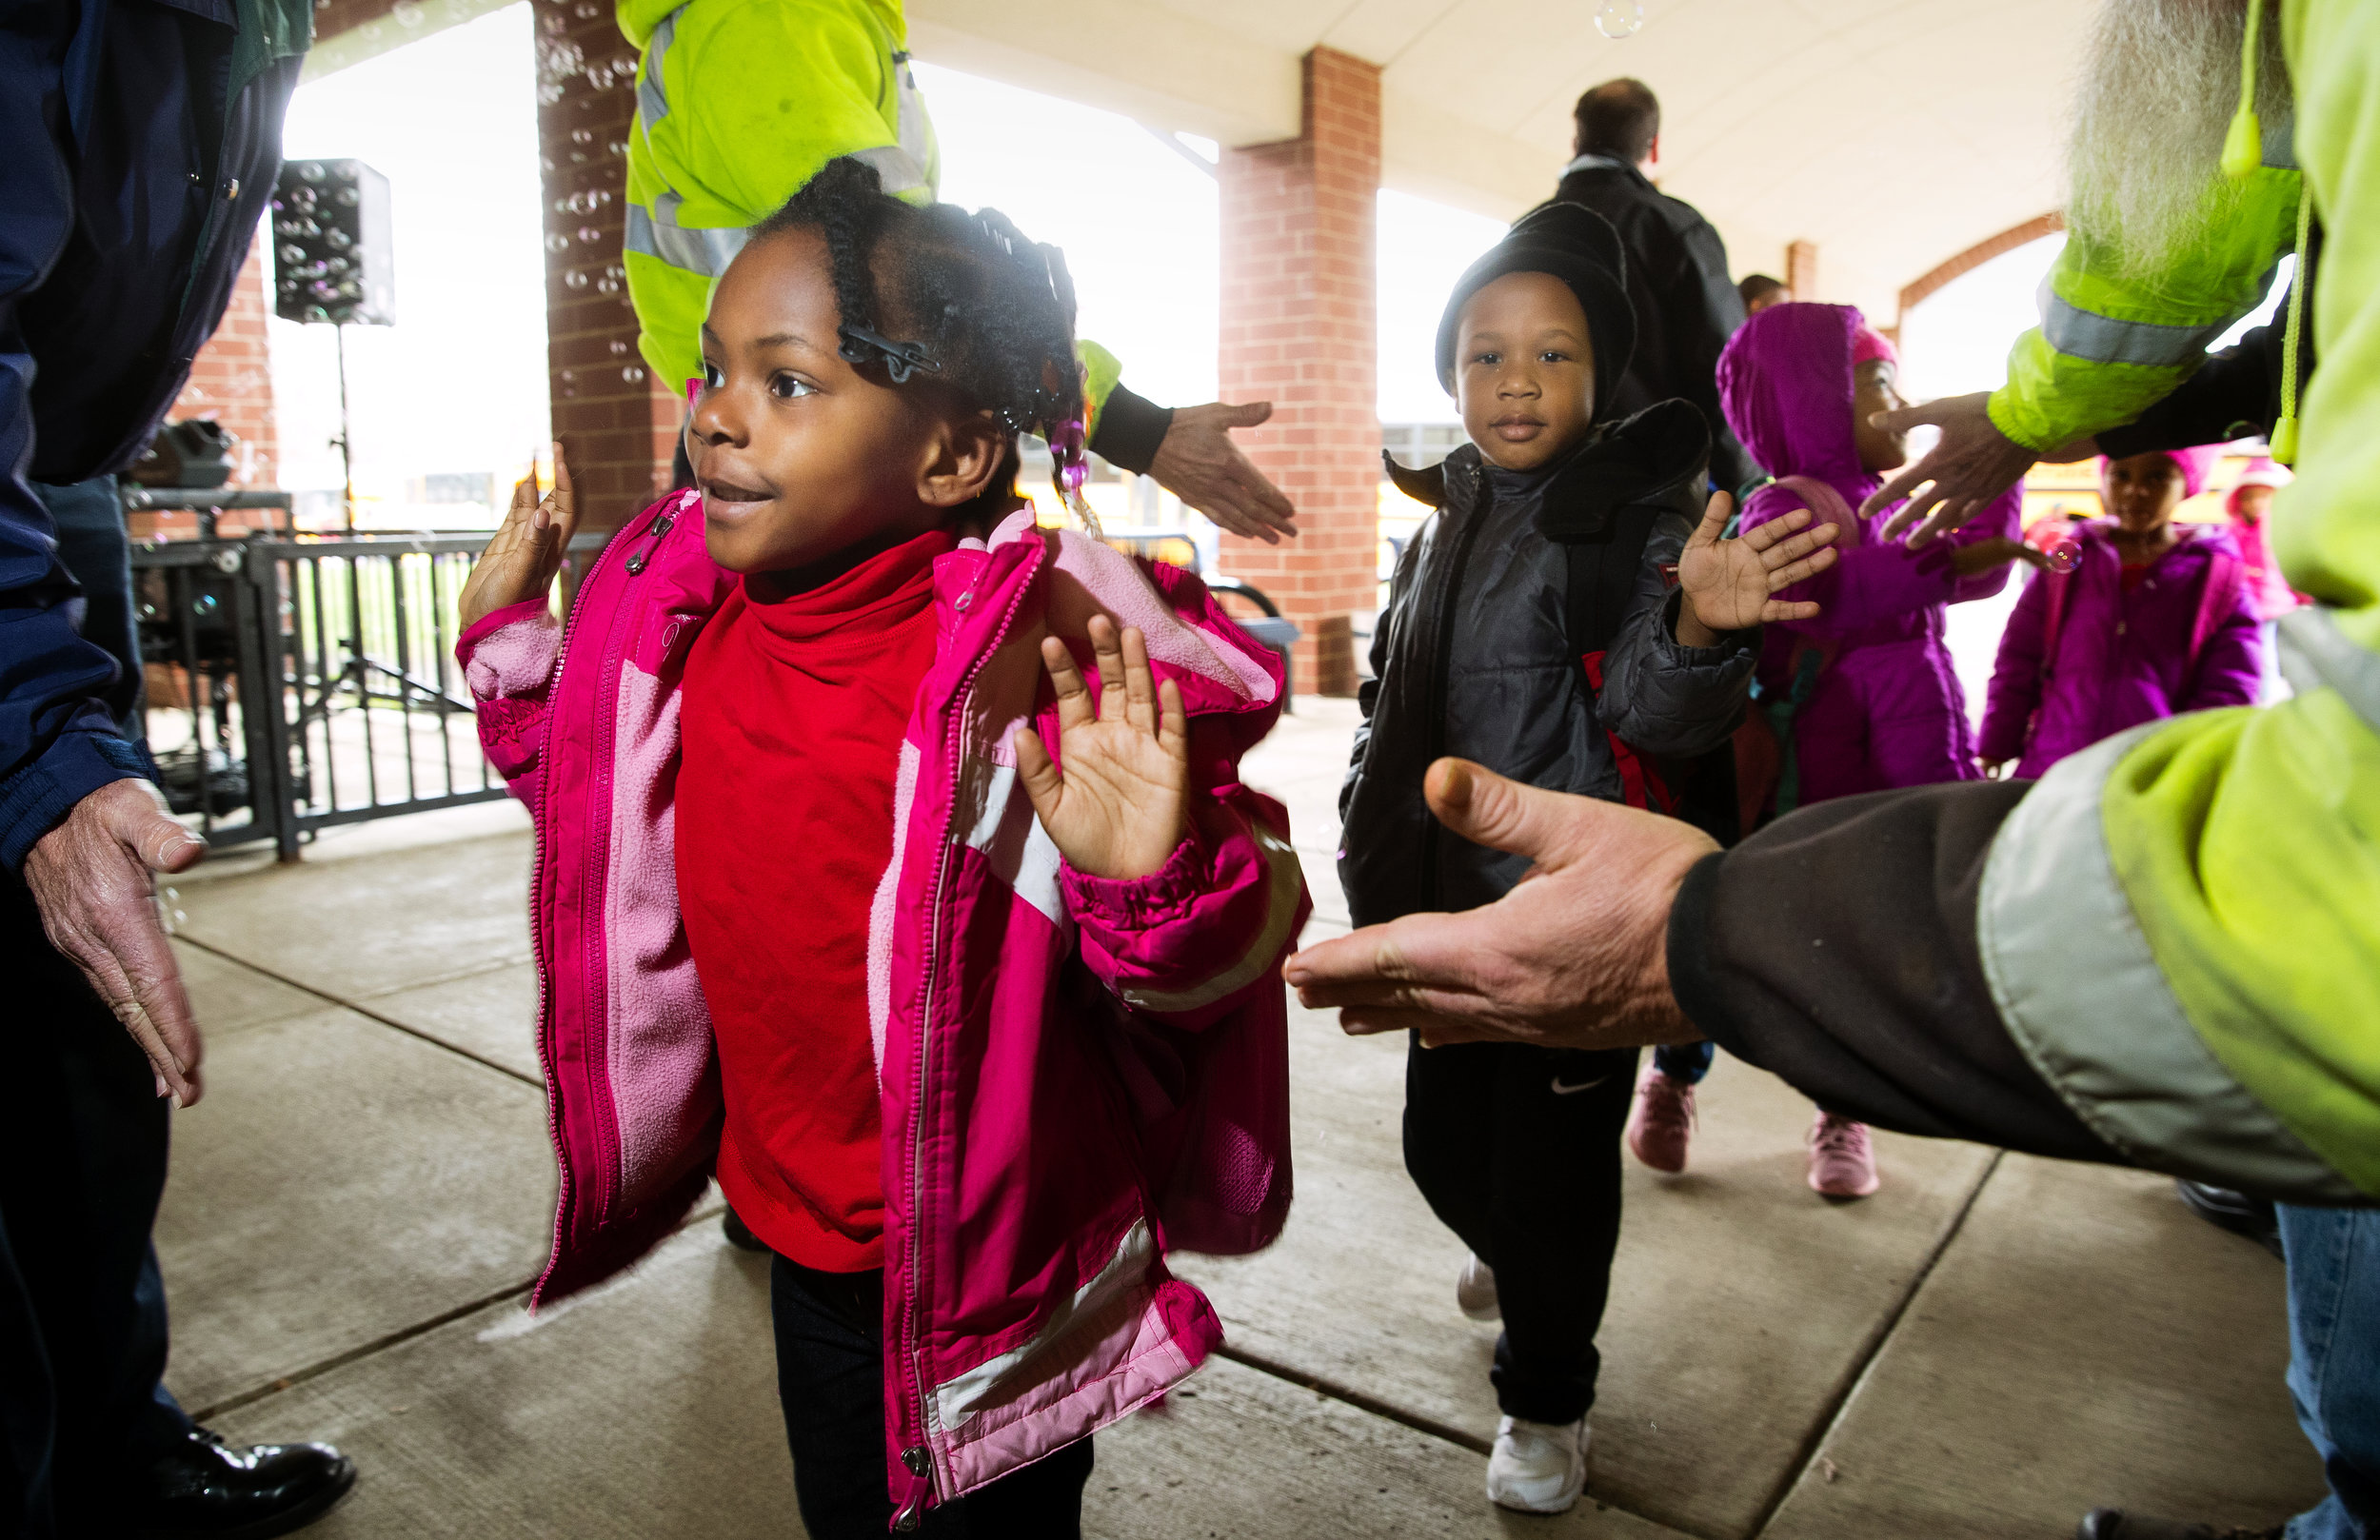 Kalise Shaw, left, and Lasshone Alexander greet Springfield city workers on their way into the Early Learning Center Monday, April 16, 2018. Employees from the mayor's office, fire, police and public works departments were all on hand to welcome the students and kick-off for Week of the Young Child, an annual event celebrating early learning, young children, their teachers & families. [Ted Schurter/The State Journal-Register]